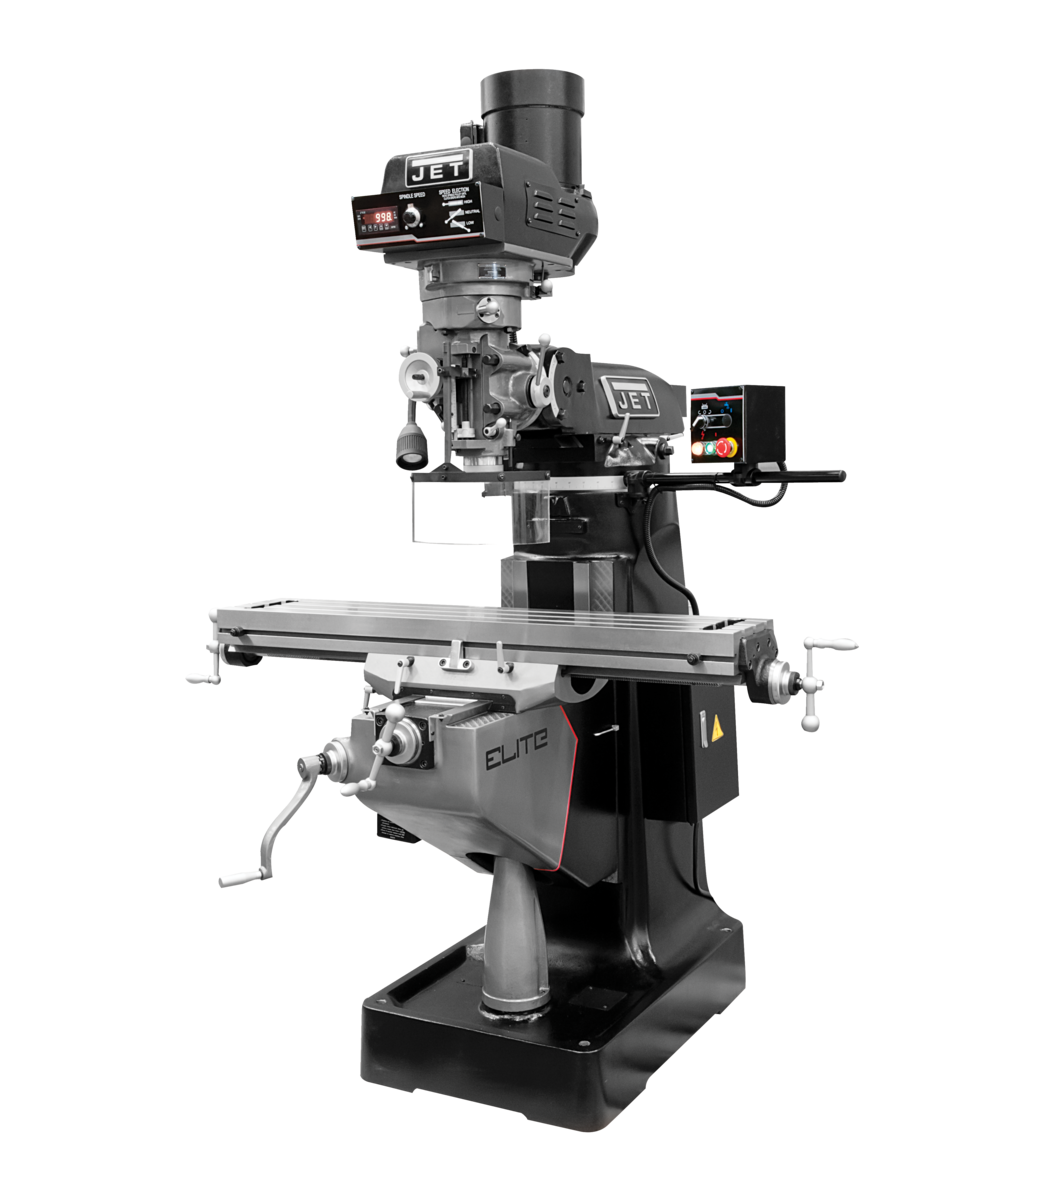 EVS-949 Mill with 3-Axis Newall DP700 (Quill) DRO and Servo X-Axis Powerfeed and USA Air Powered Draw Bar